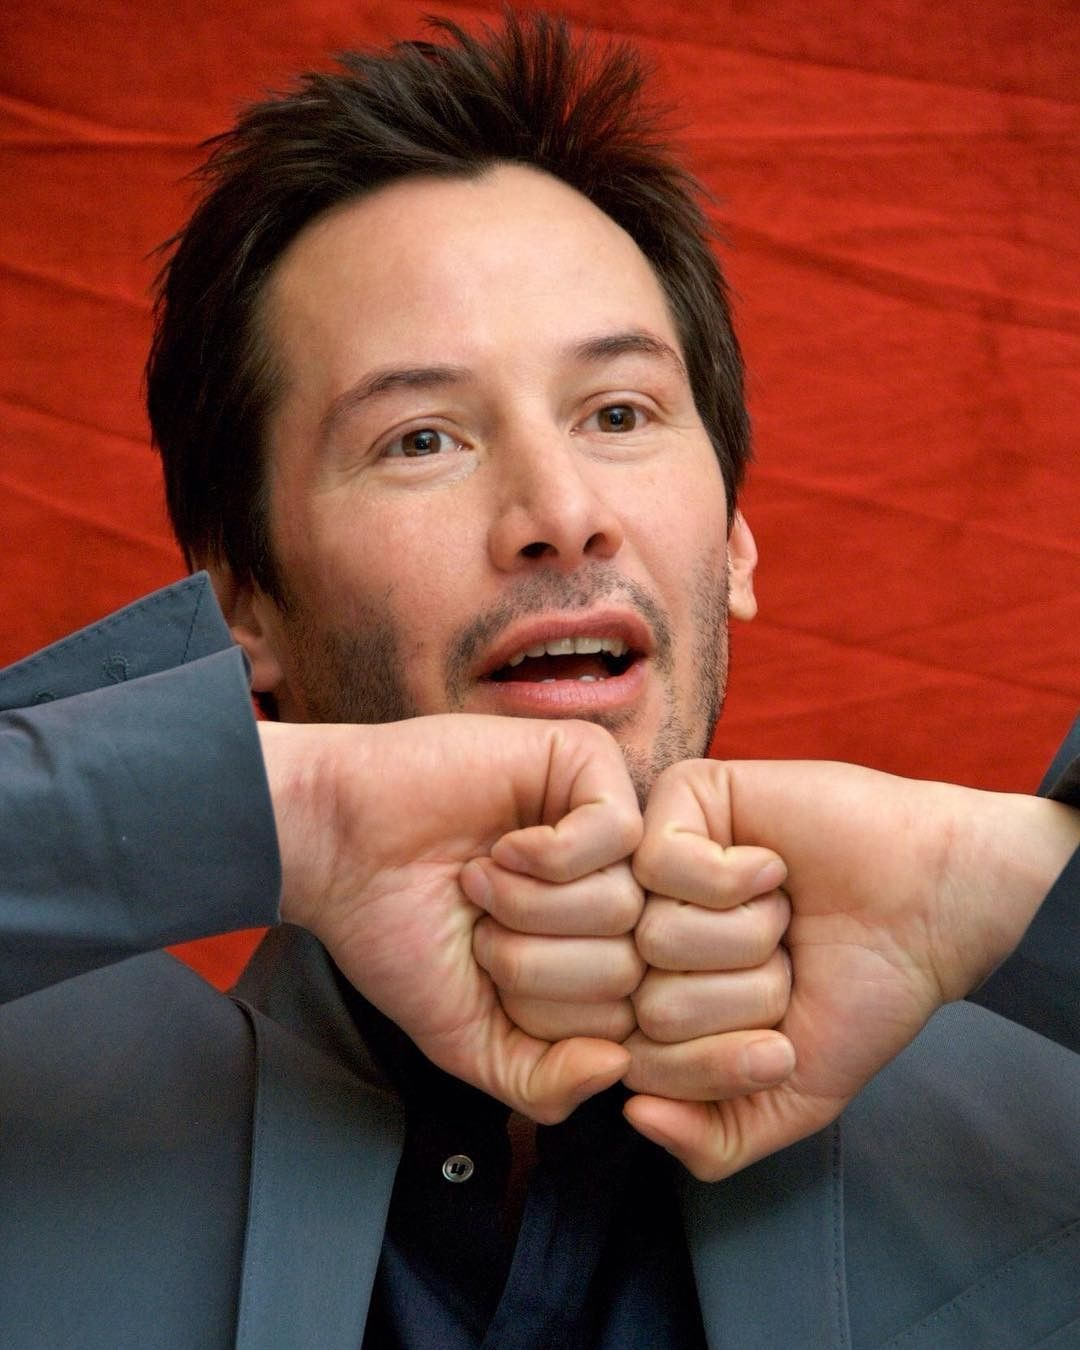 Pin on Keanu Reeves, You are so special